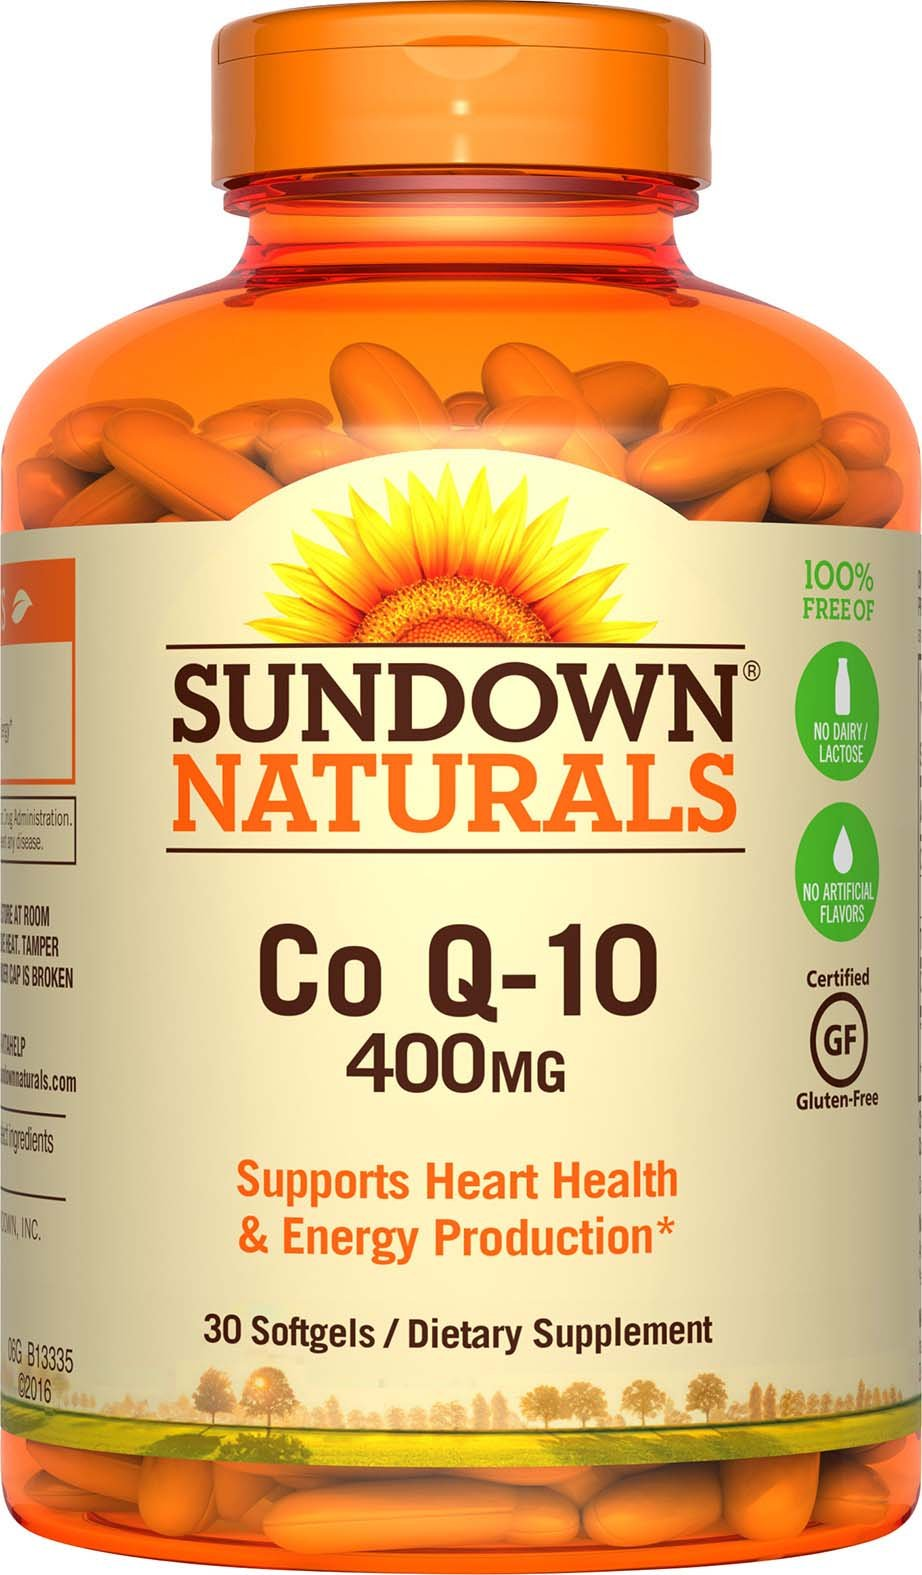 Sundown Naturals Co Q-10 400 mg, 30 Softgels